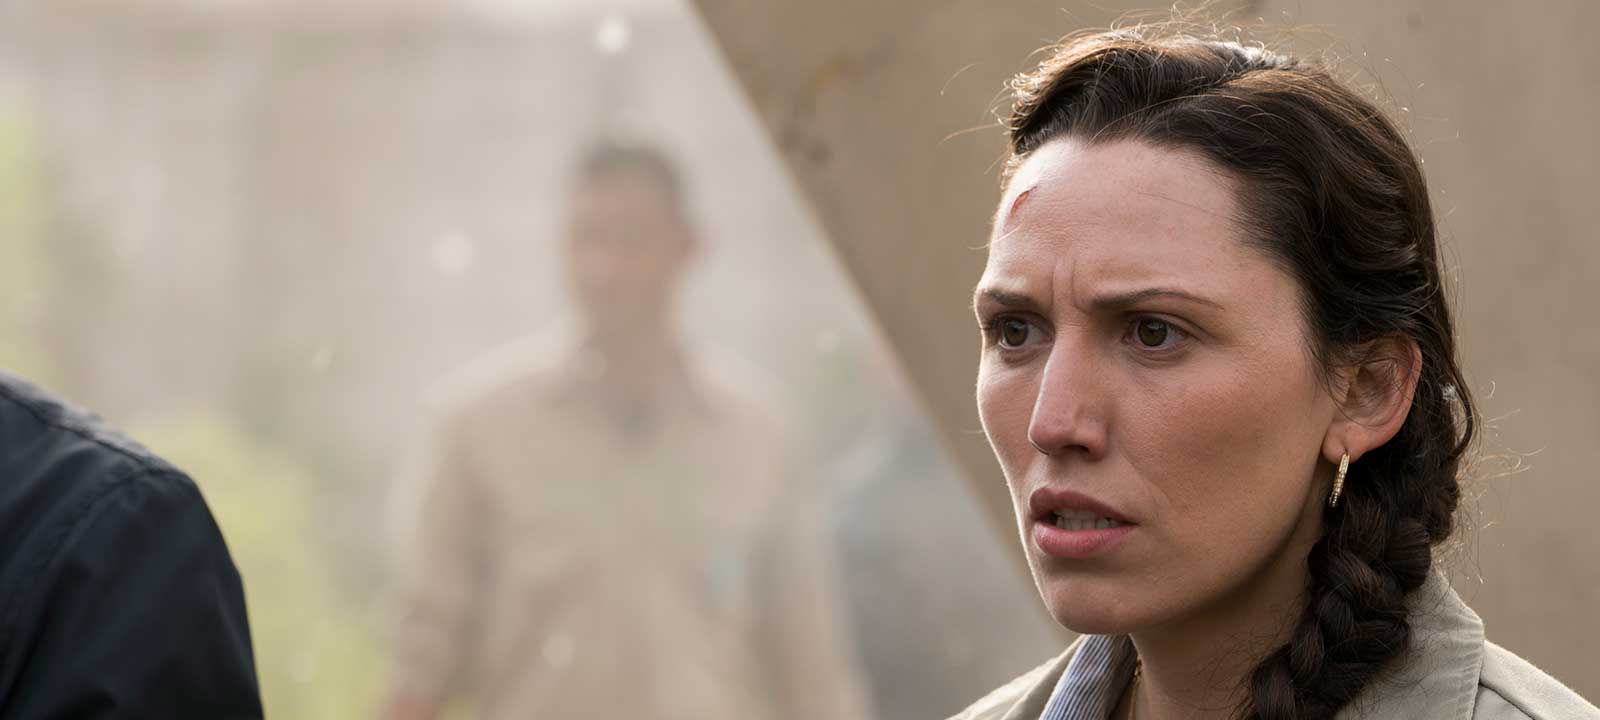 fear-the-walking-dead-episode-311-lola-tena-800×600-interview